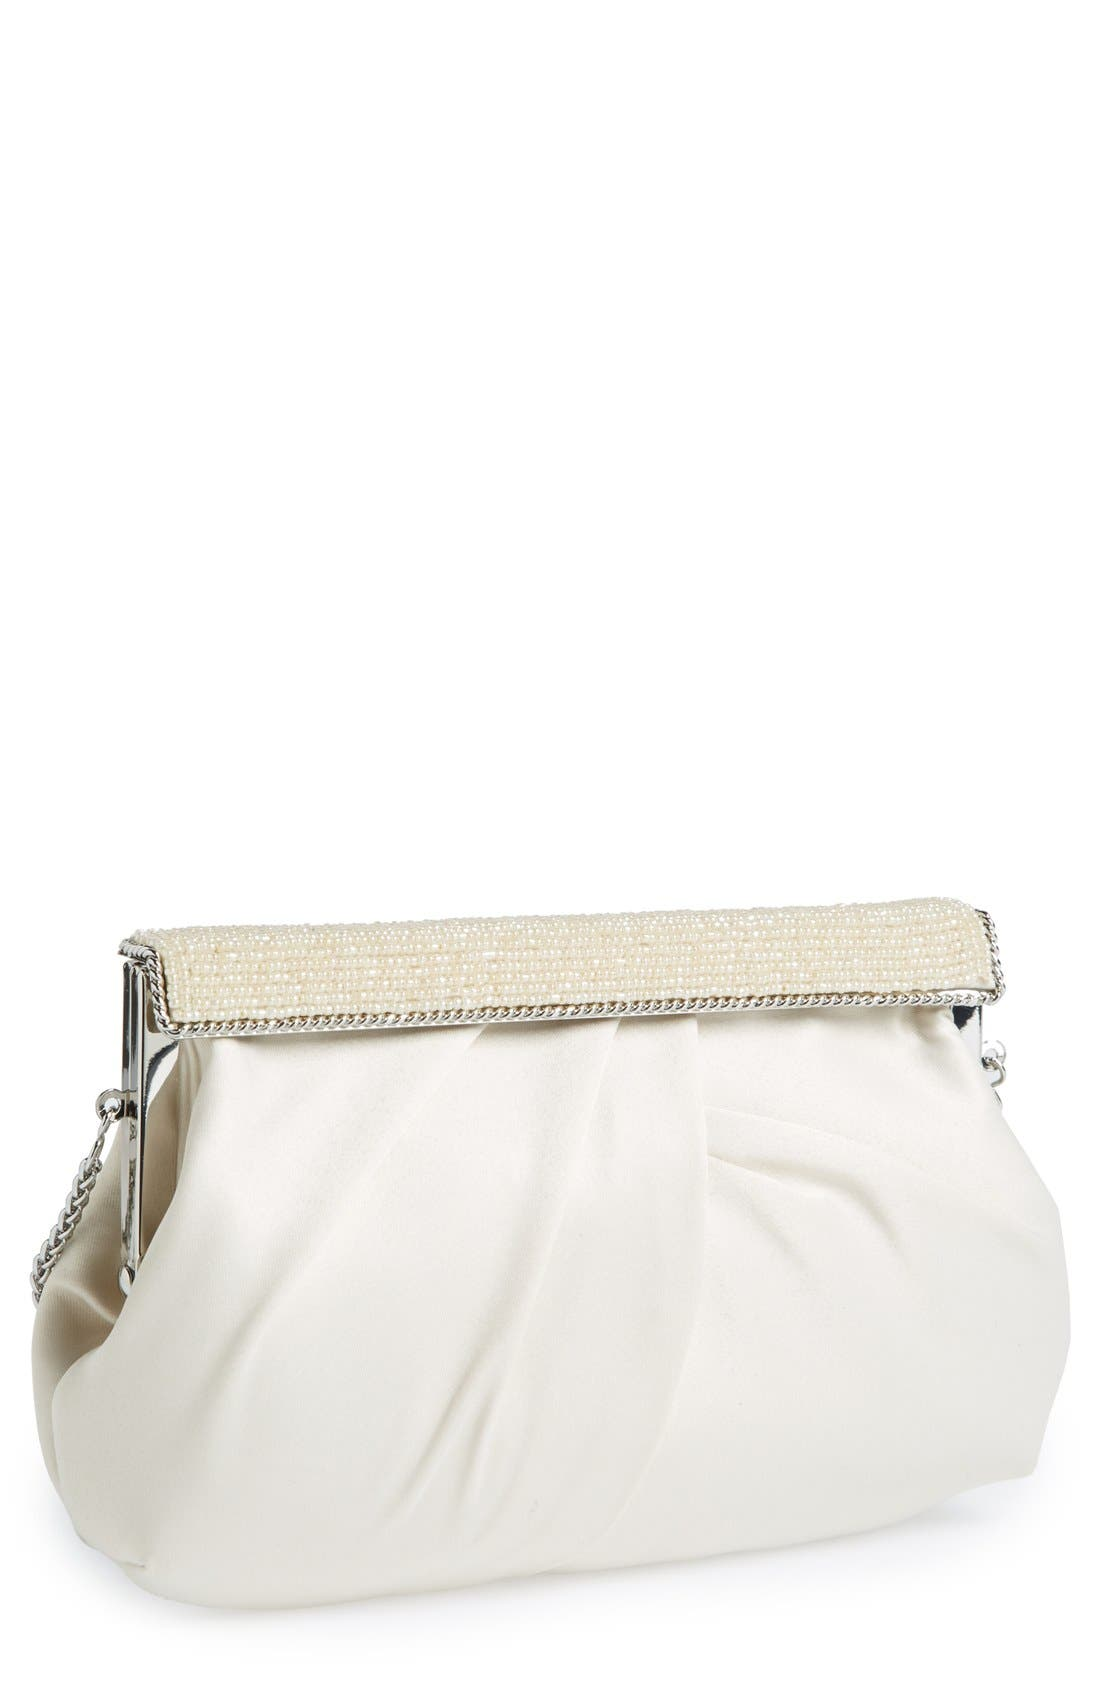 Alternate Image 1 Selected - Nina 'Lendy' Satin Frame Clutch